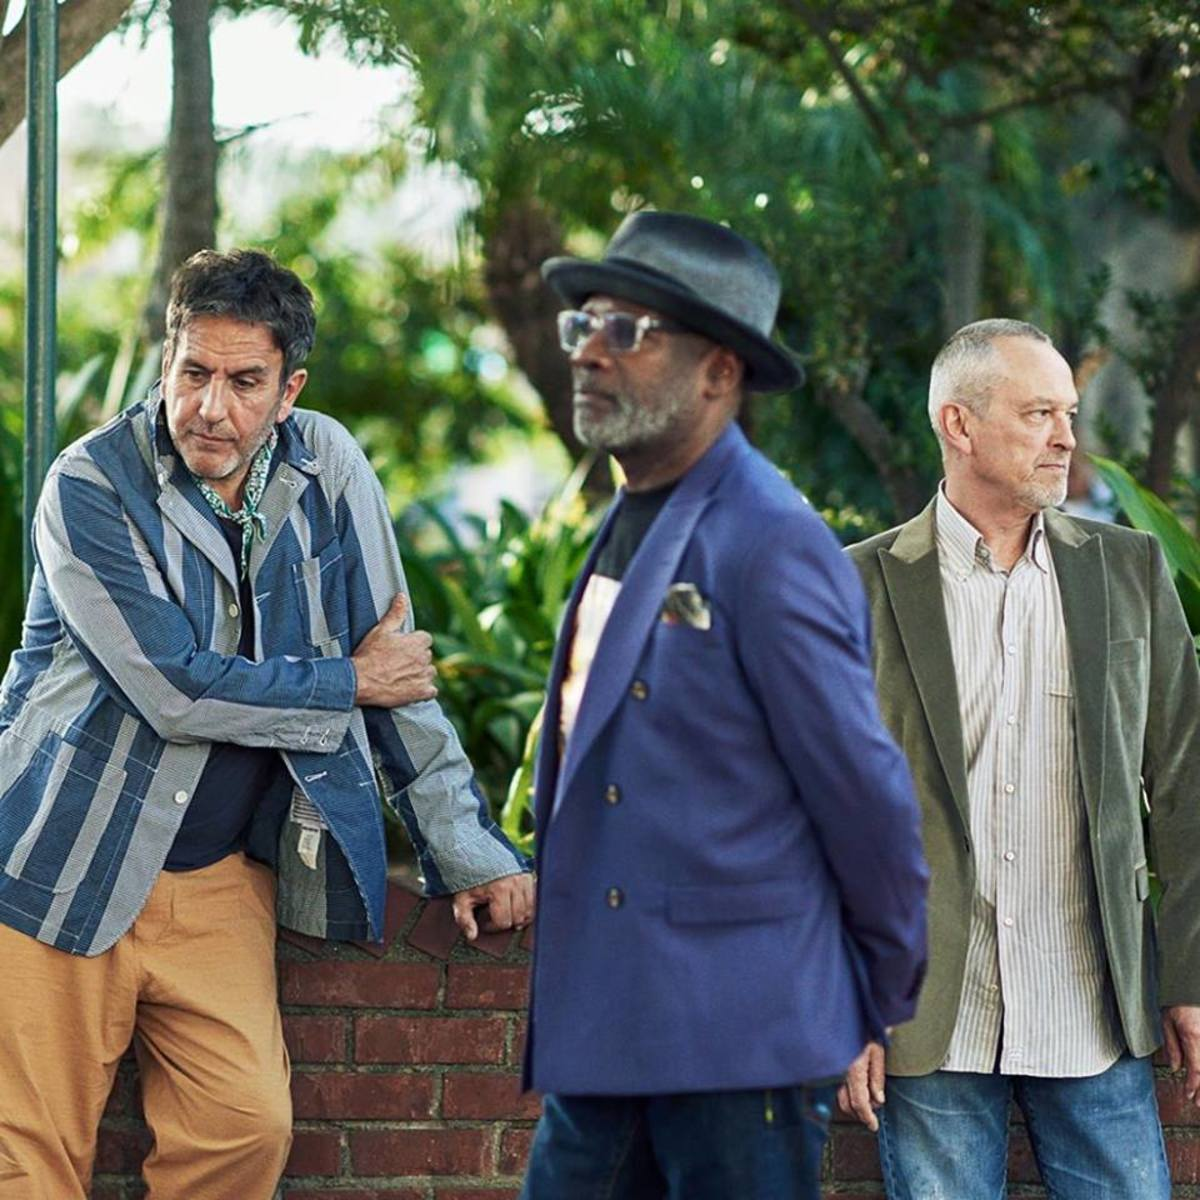 The three founding members of The Specials, (left to right) Terry Hall, Lynval Golding and Horace Panter, are currently touring in support of their new album, which is titled Encore. The tour hit Brooklyn Steel in Williamsburg, Brooklyn, New York on Friday, June 14th for a terrific and memorable show. (Photo by John Cheuse)